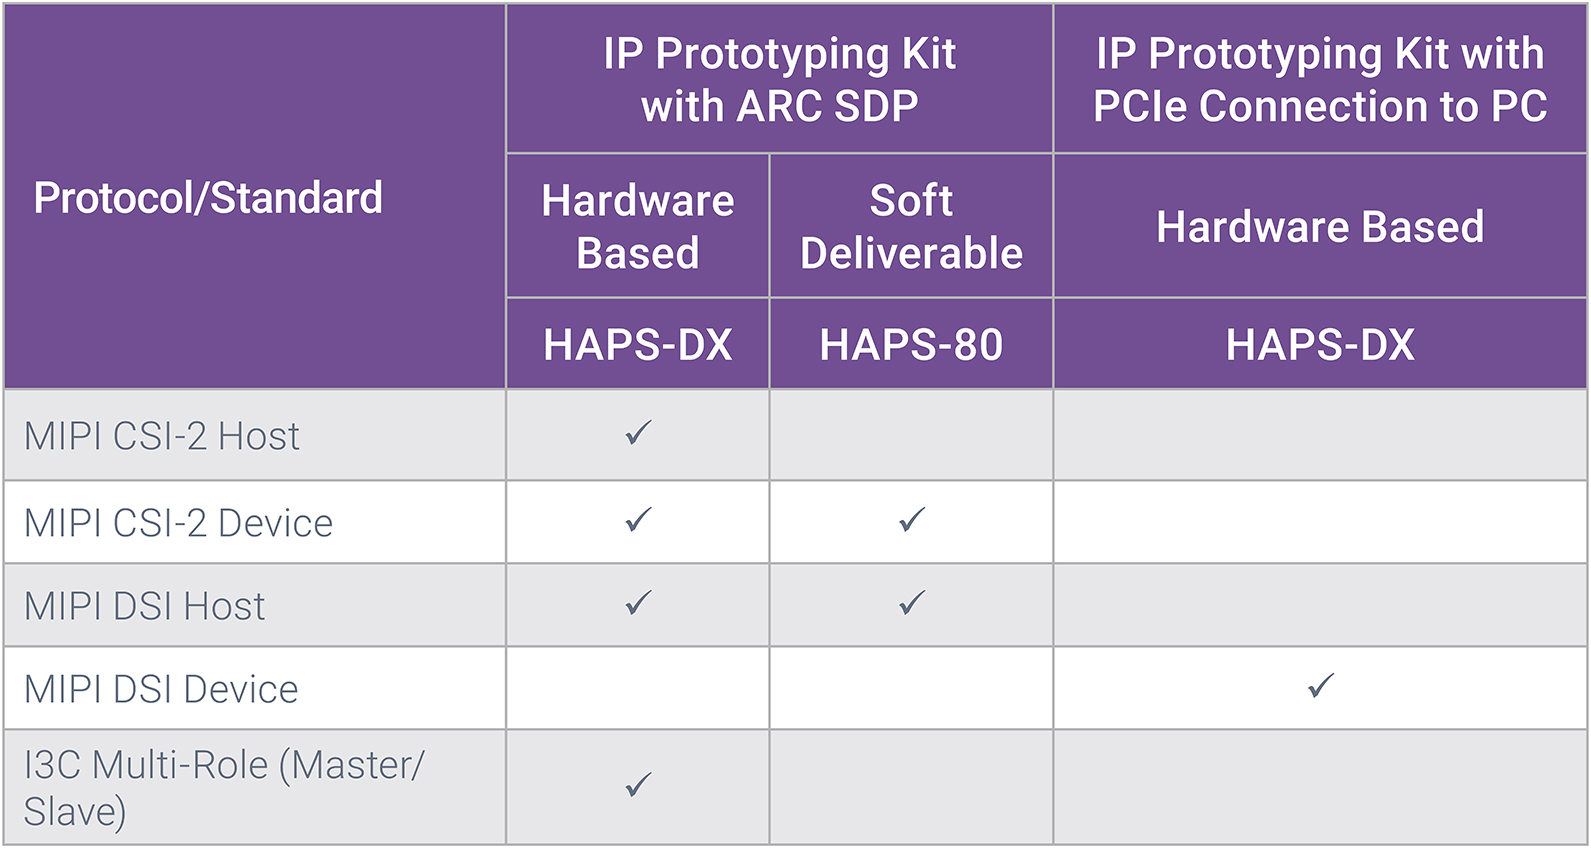 IP Prototyping Kits for MIPI